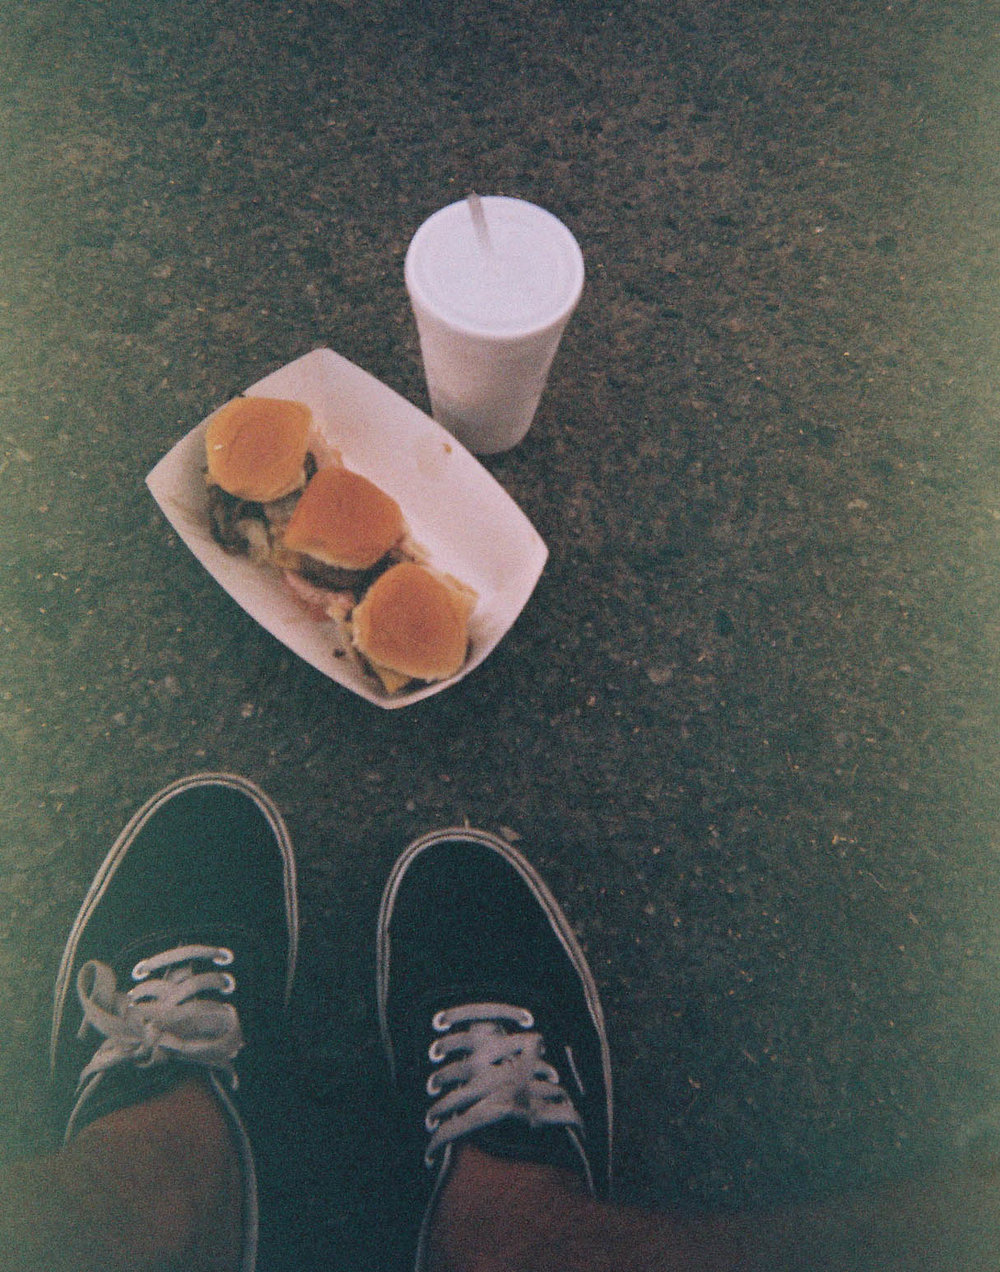 Lunch at Venice Beach, CA